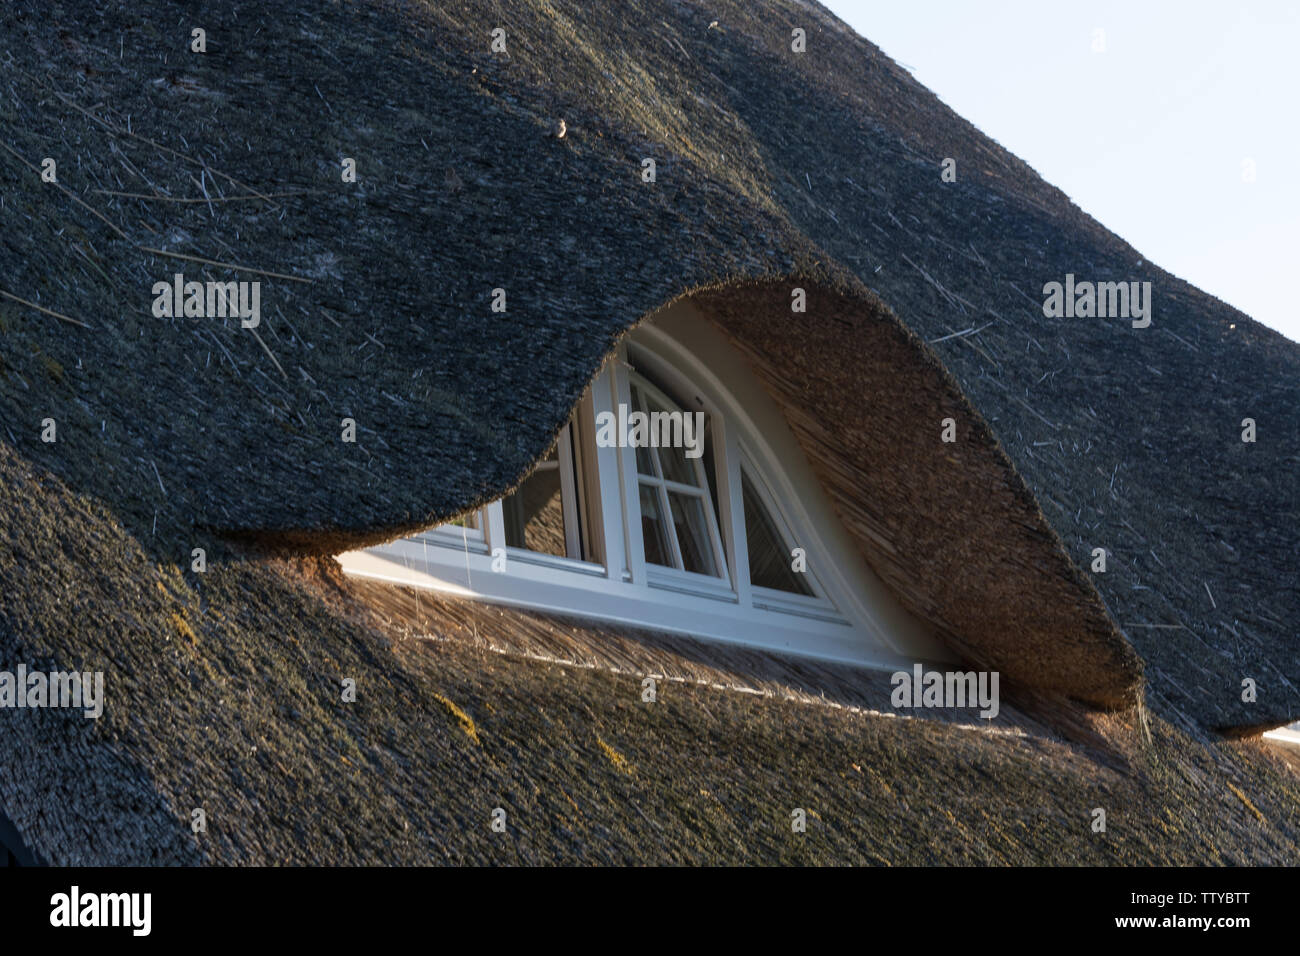 Houses on the Fischland-Darß with a thatched roof - Stock Image